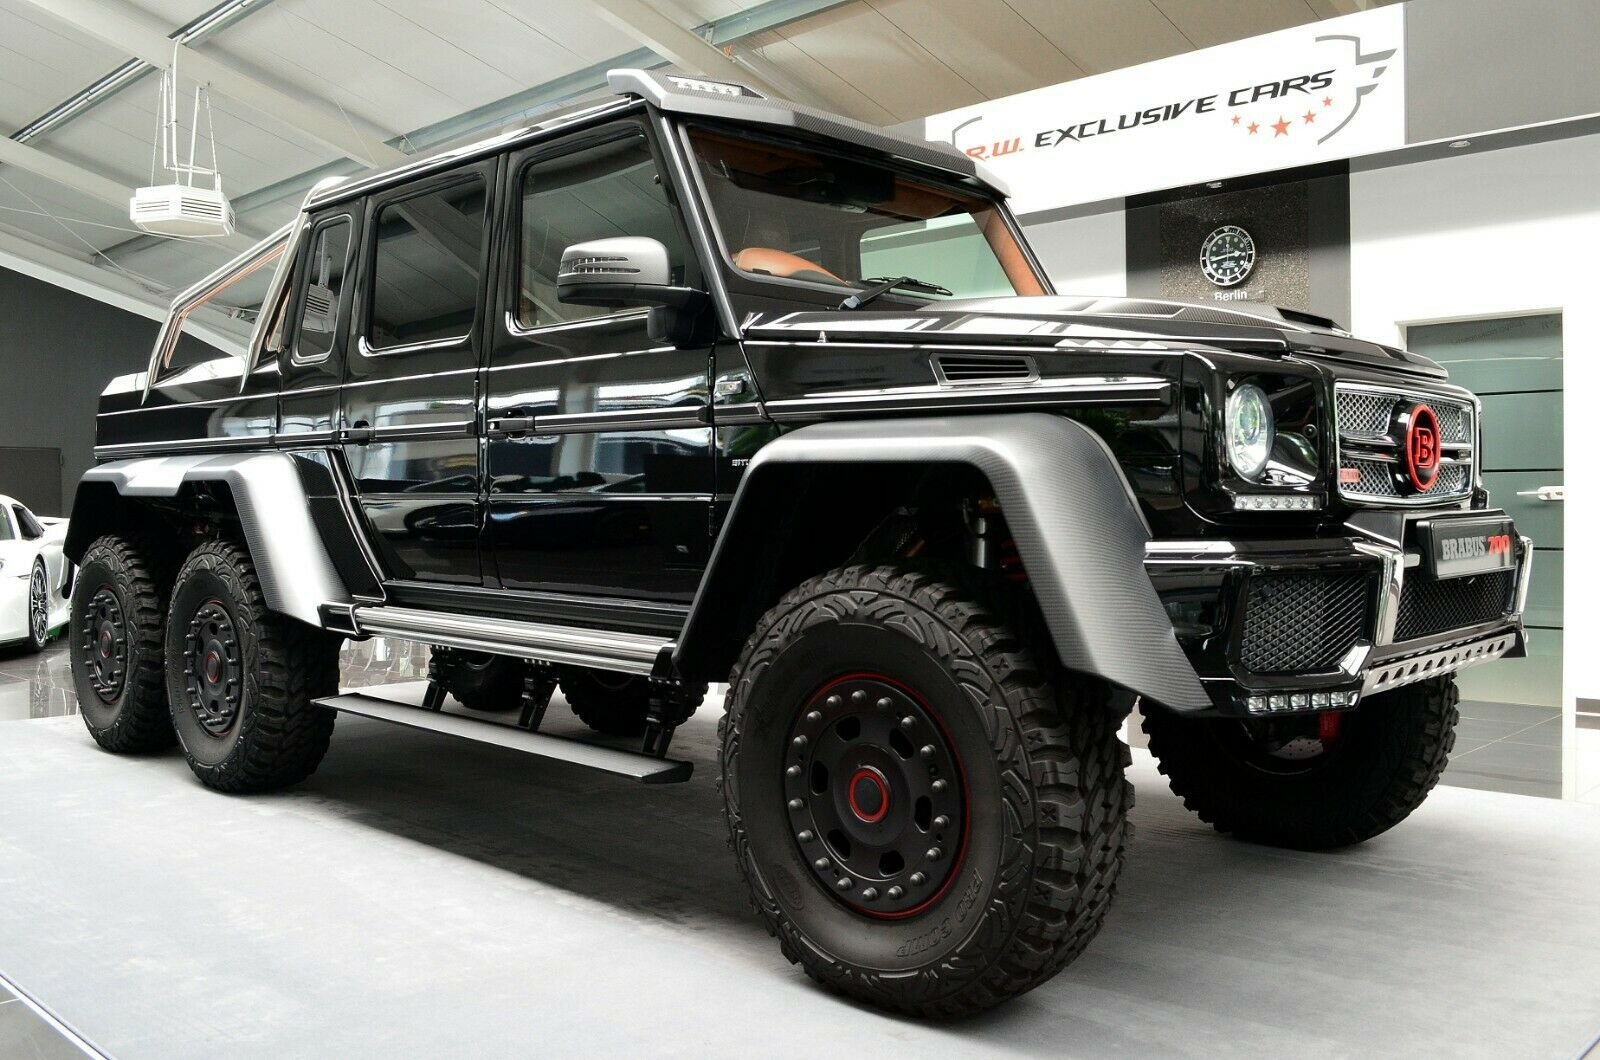 Mercedes-Benz G 63 AMG 6x6 Brabus700 - 1of15 (5)